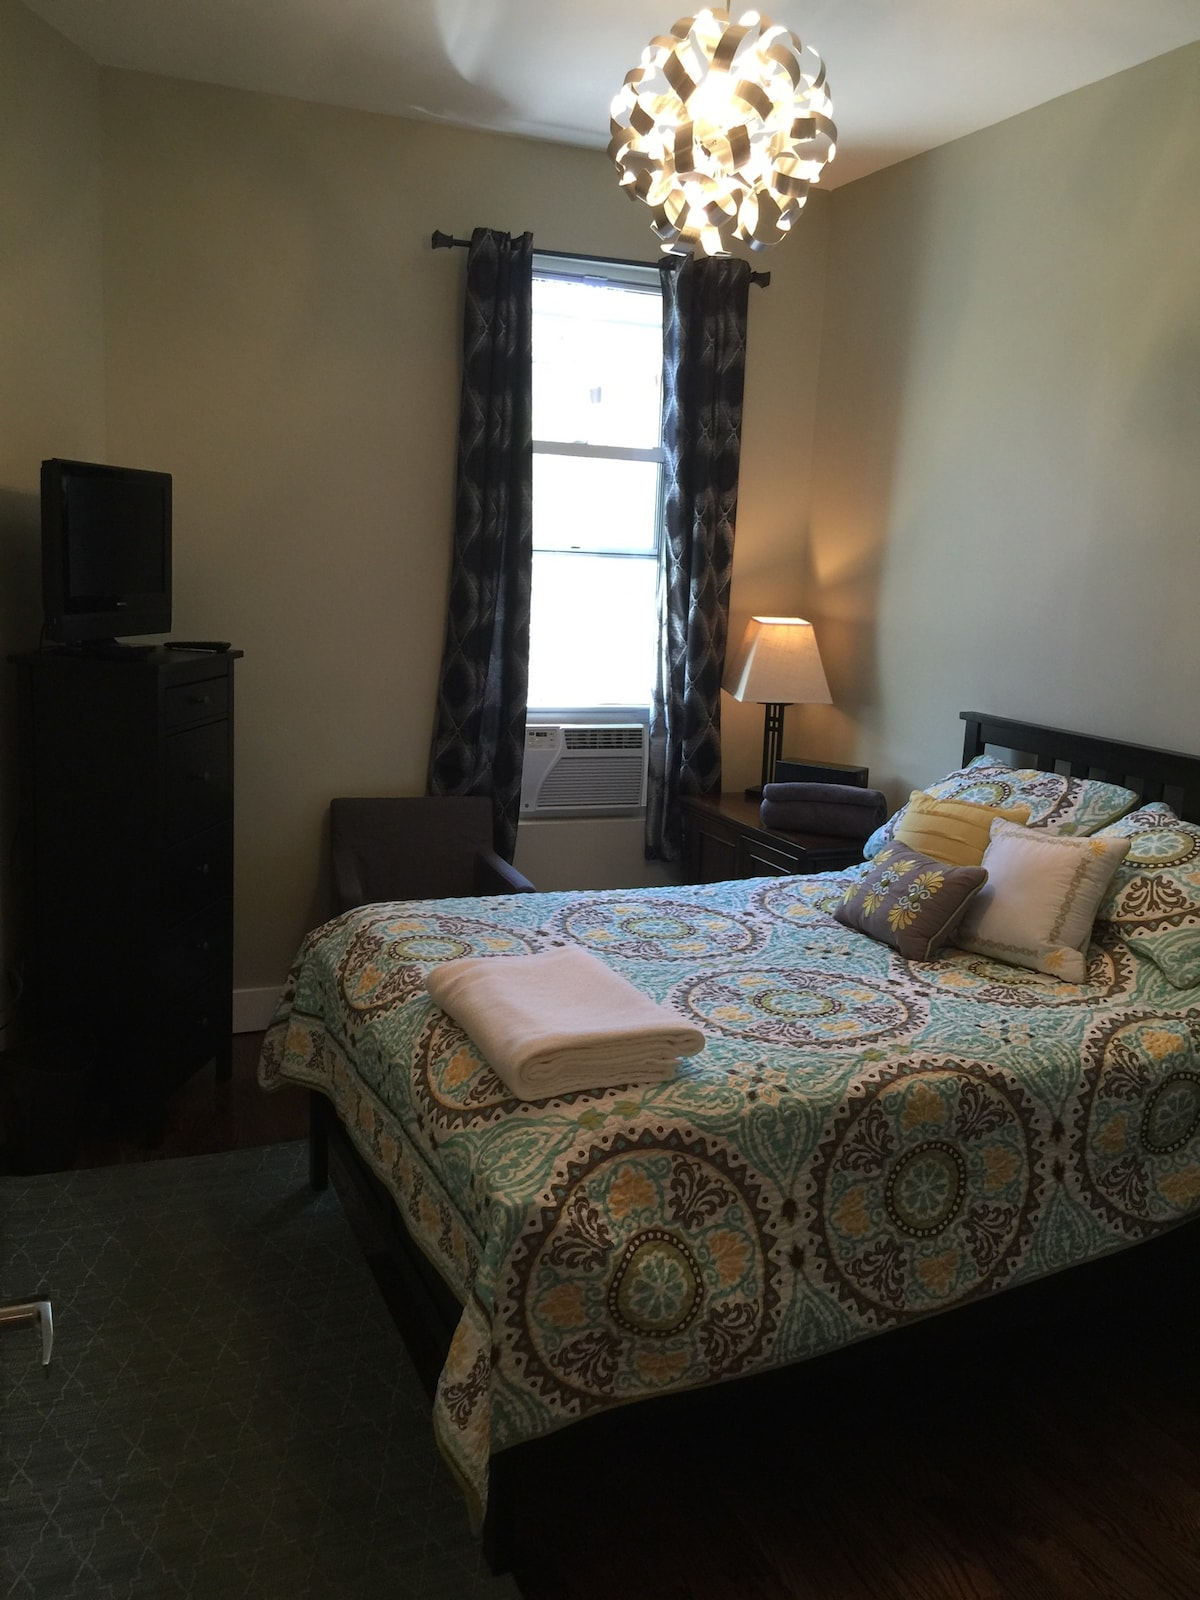 Clean, Quiet with Private Room